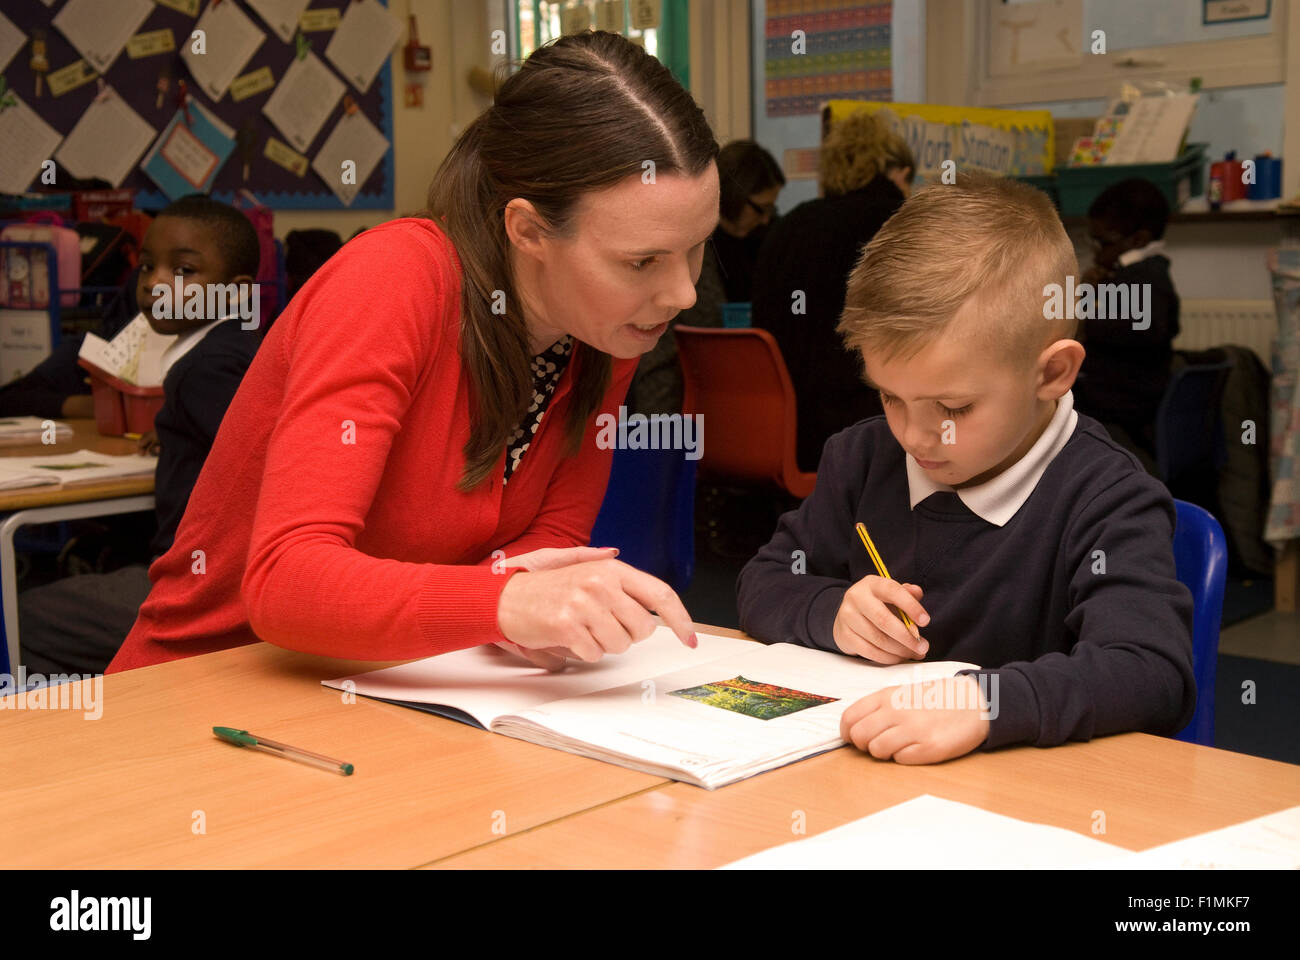 primary school teacher assisting pupil in classroom london uk